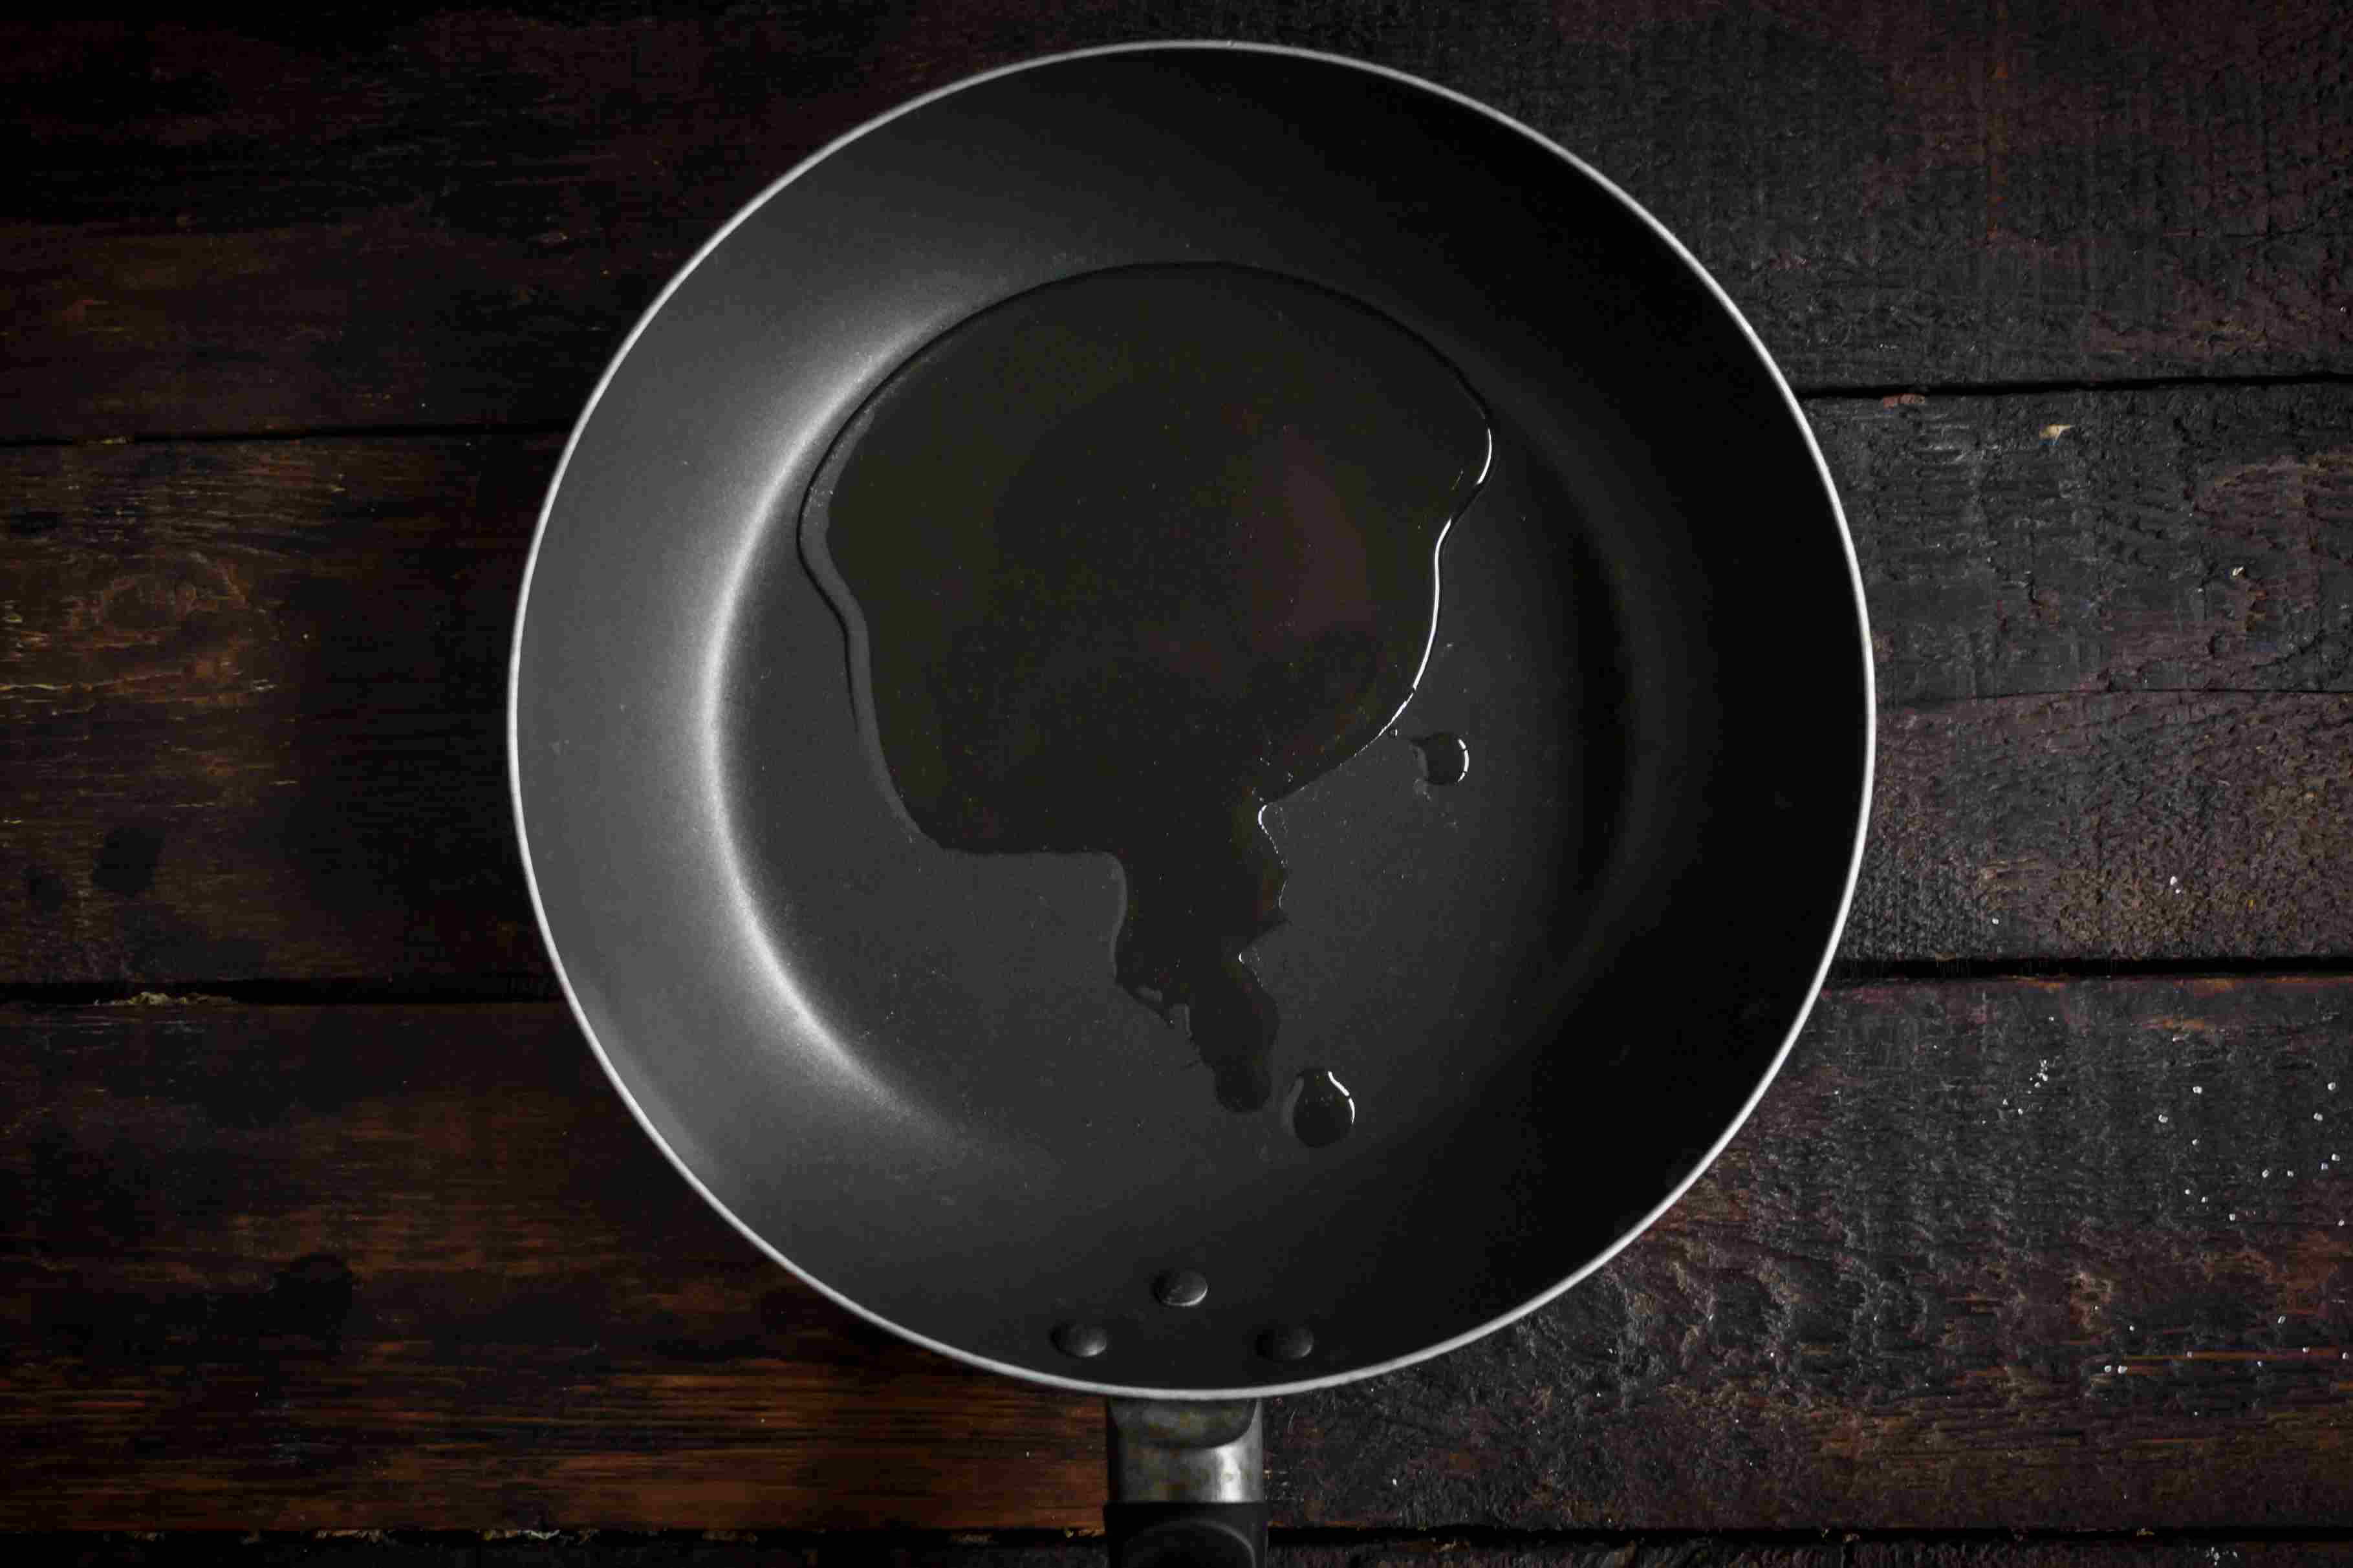 Heat the oil in a wok or frying pan